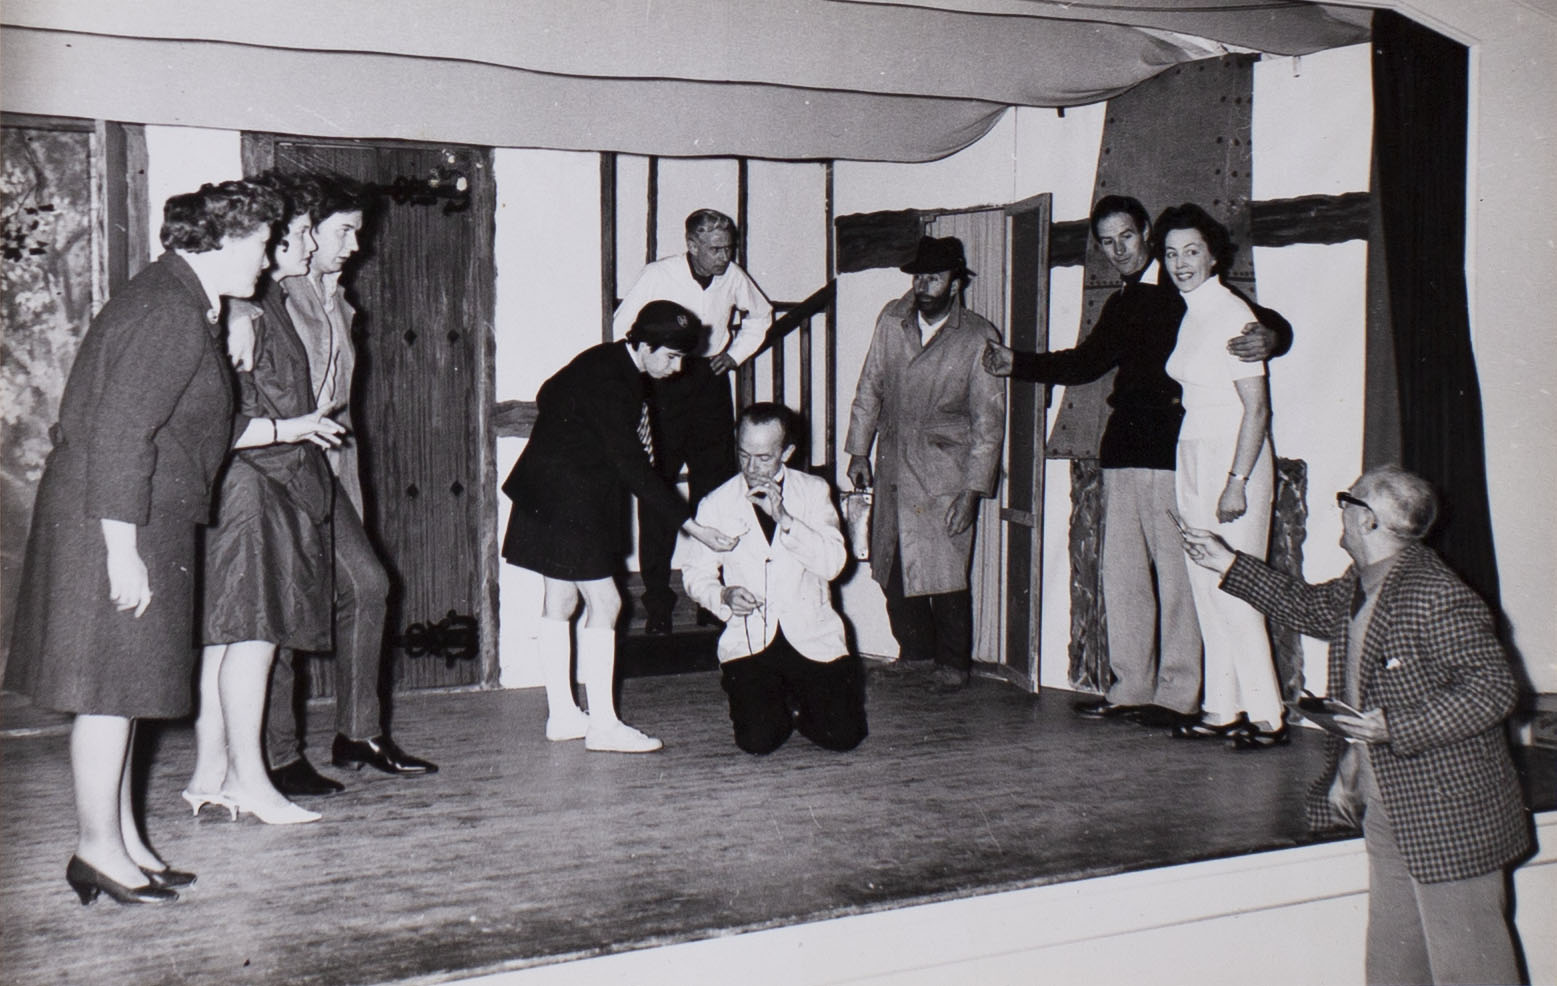 Photograph of the cast in a scene from the play 'Here We Come Gathering' presented by Bishopsteignton Players